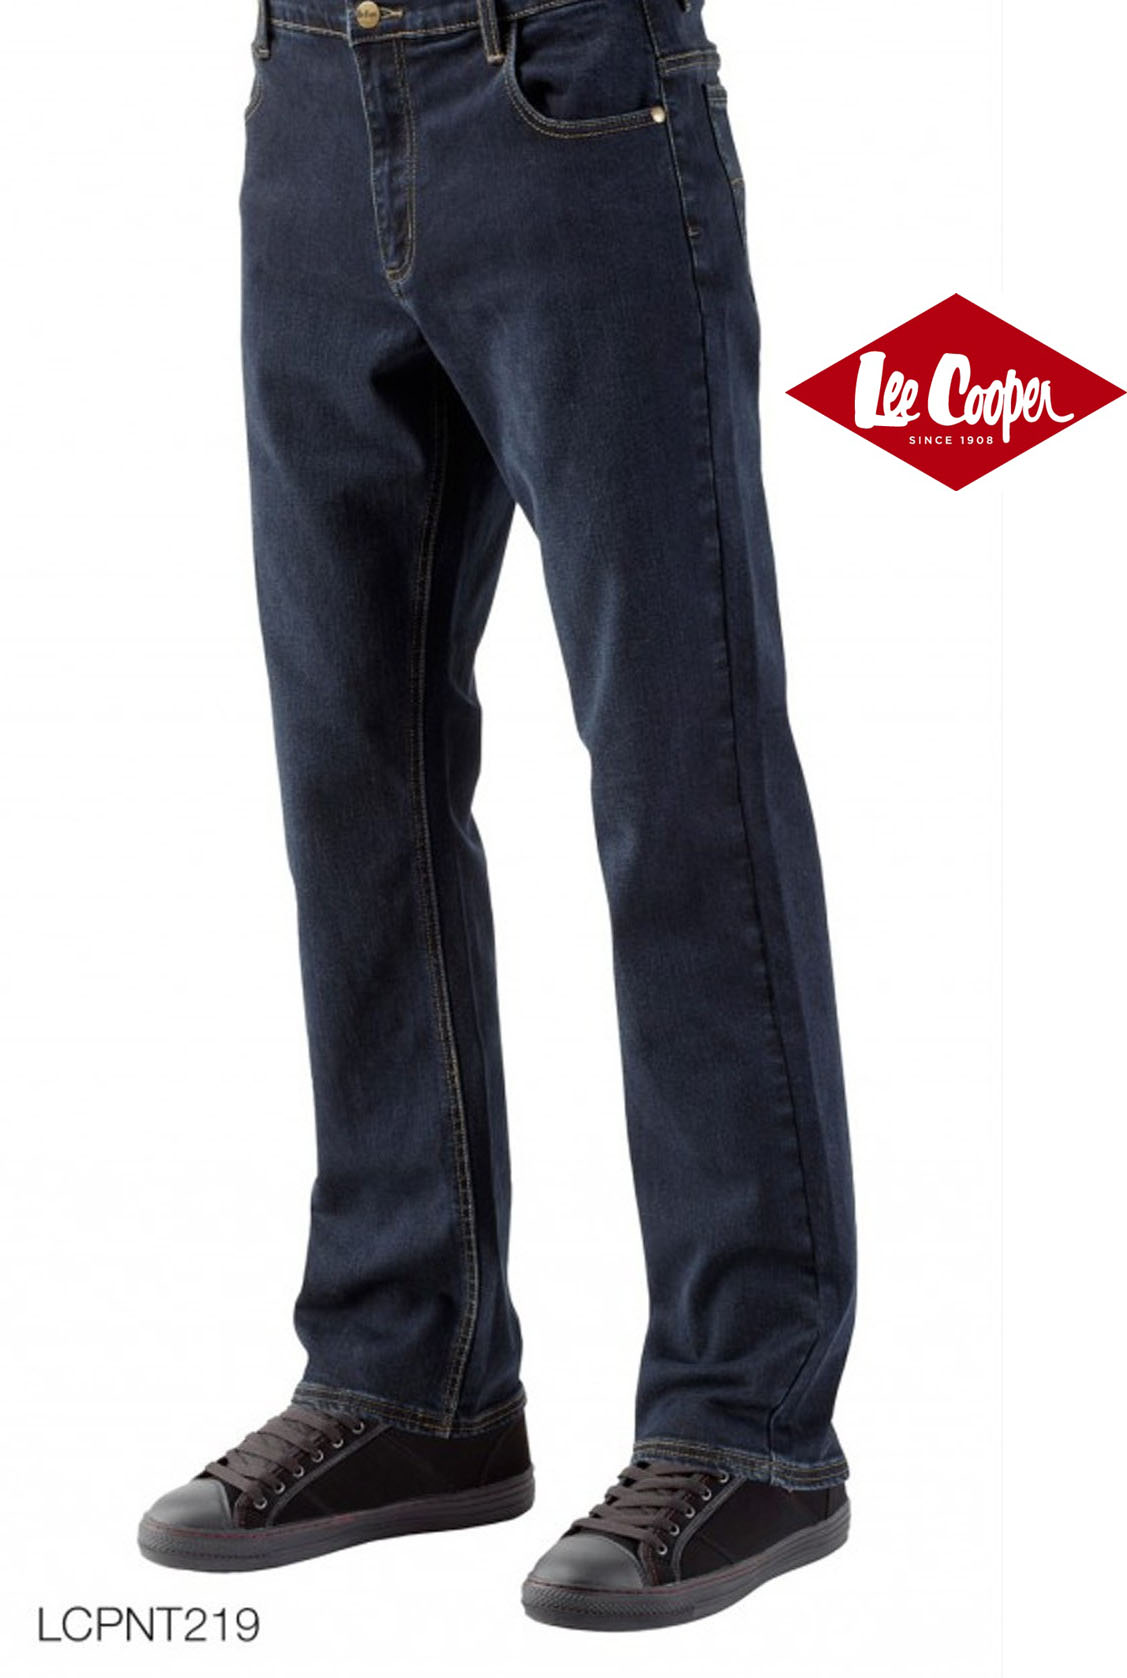 Jean LEE COOPER coupe droite - LCPNT 219